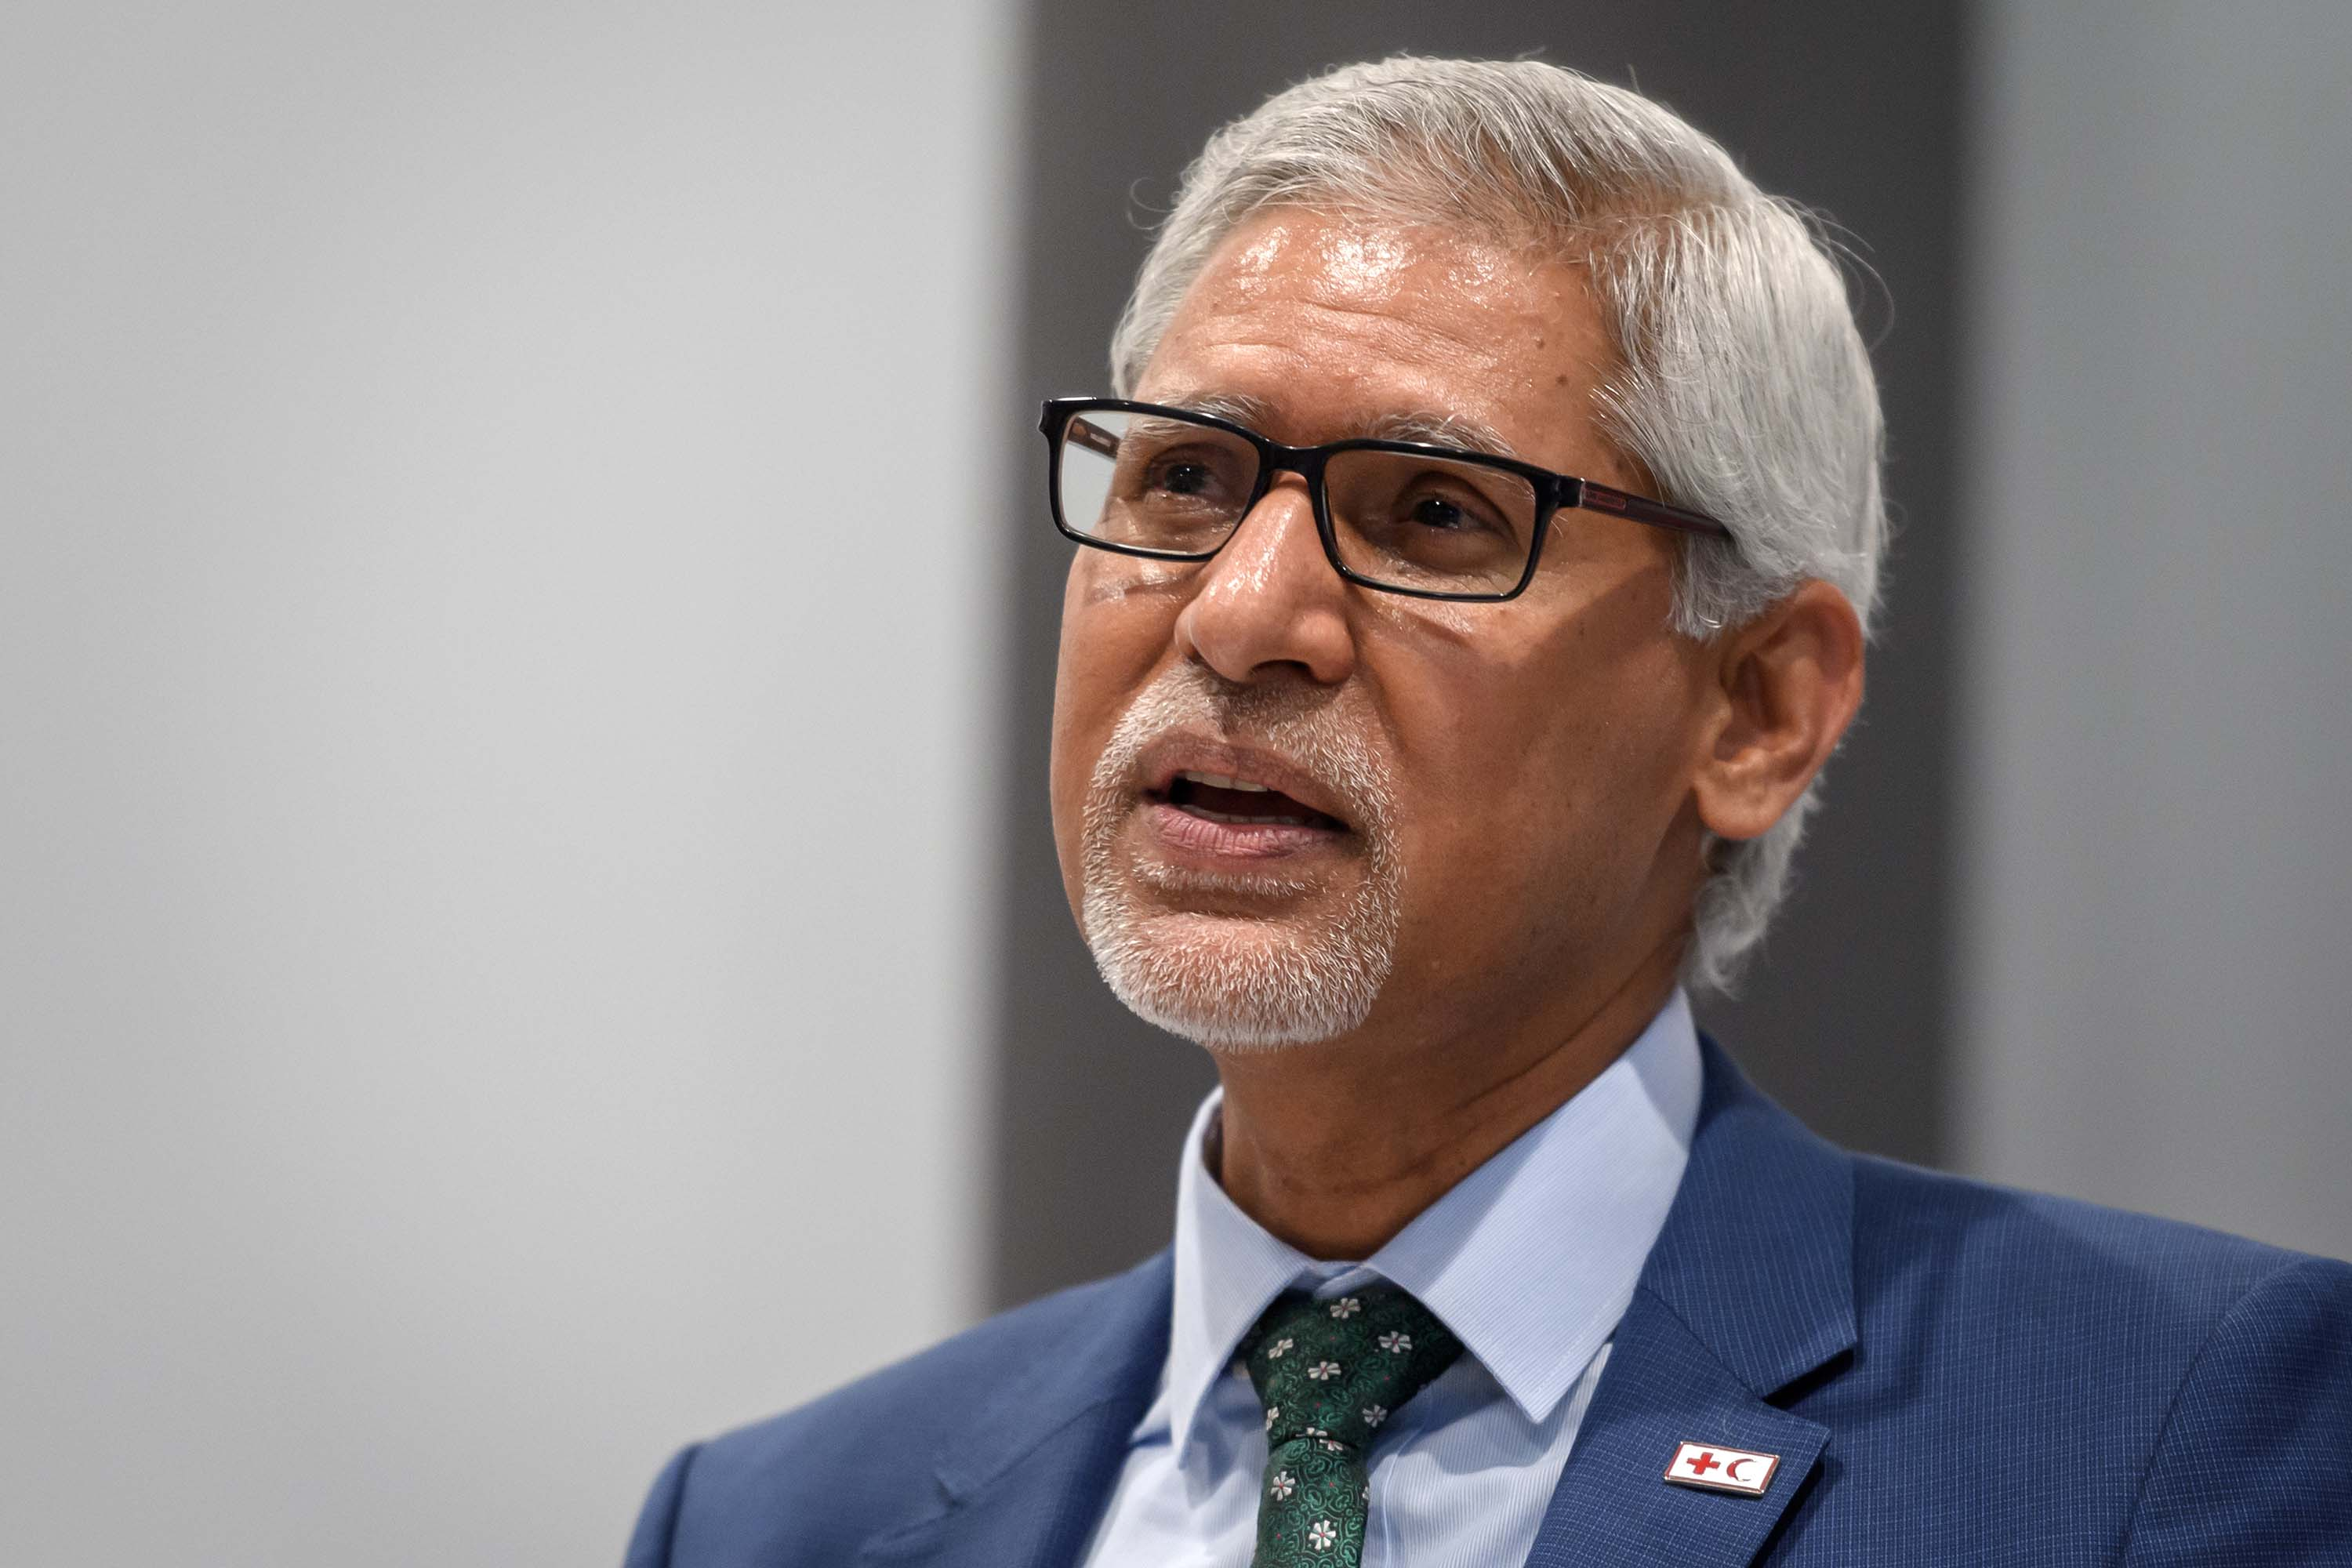 International Federation of Red Cross and Red Crescent Societies Secretary-General Jagan Chapagain is pictured in Geneva, Switzerland, on July 22.